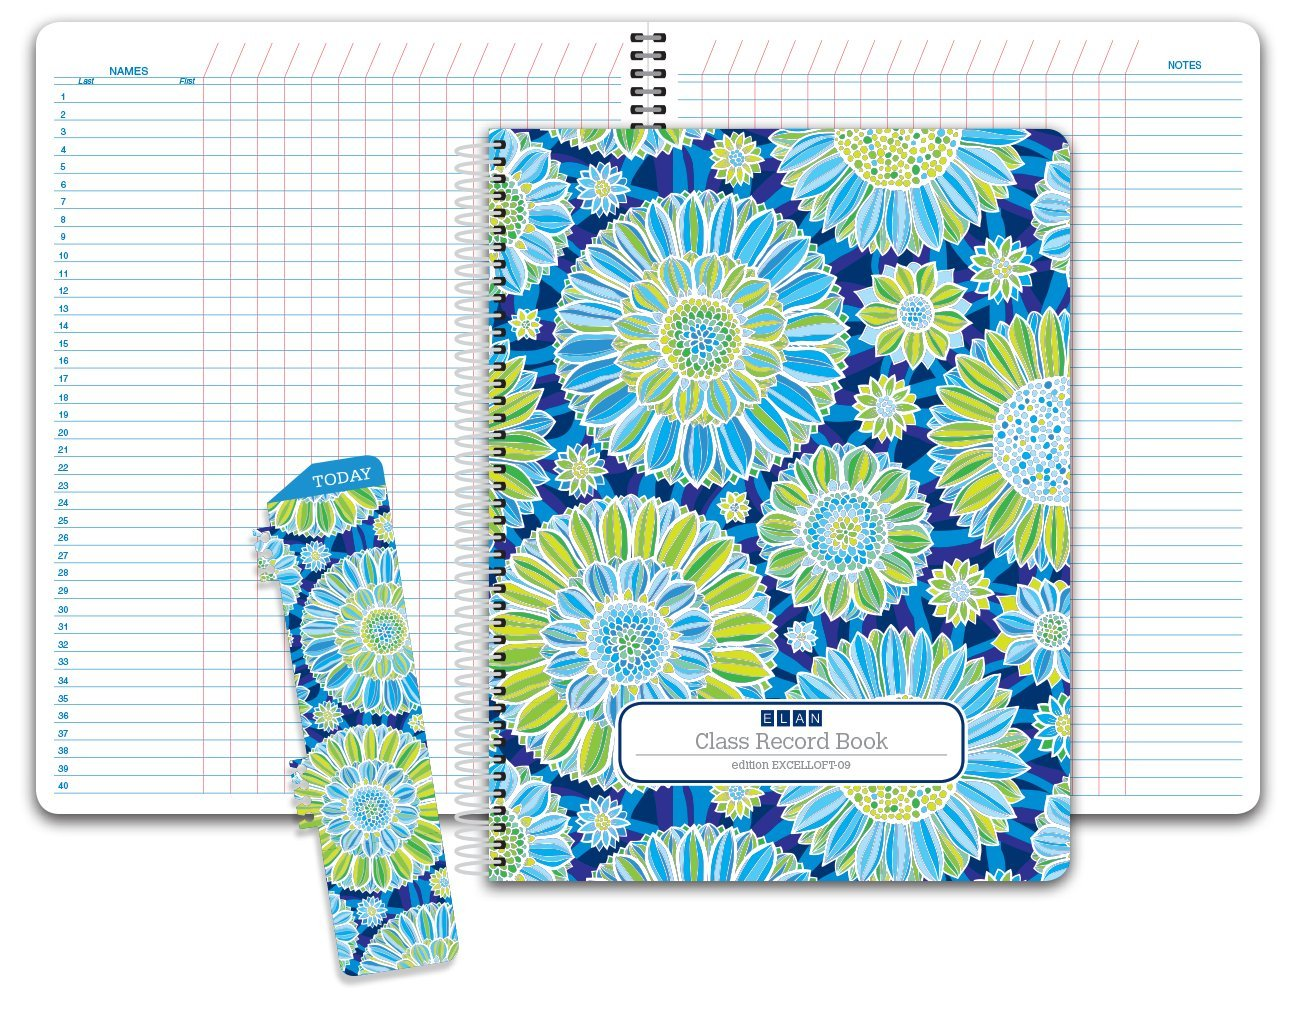 Class Record Book Unstructured...set it up to record grades your way! 40 student names (Excello - Green Blue Flowers)